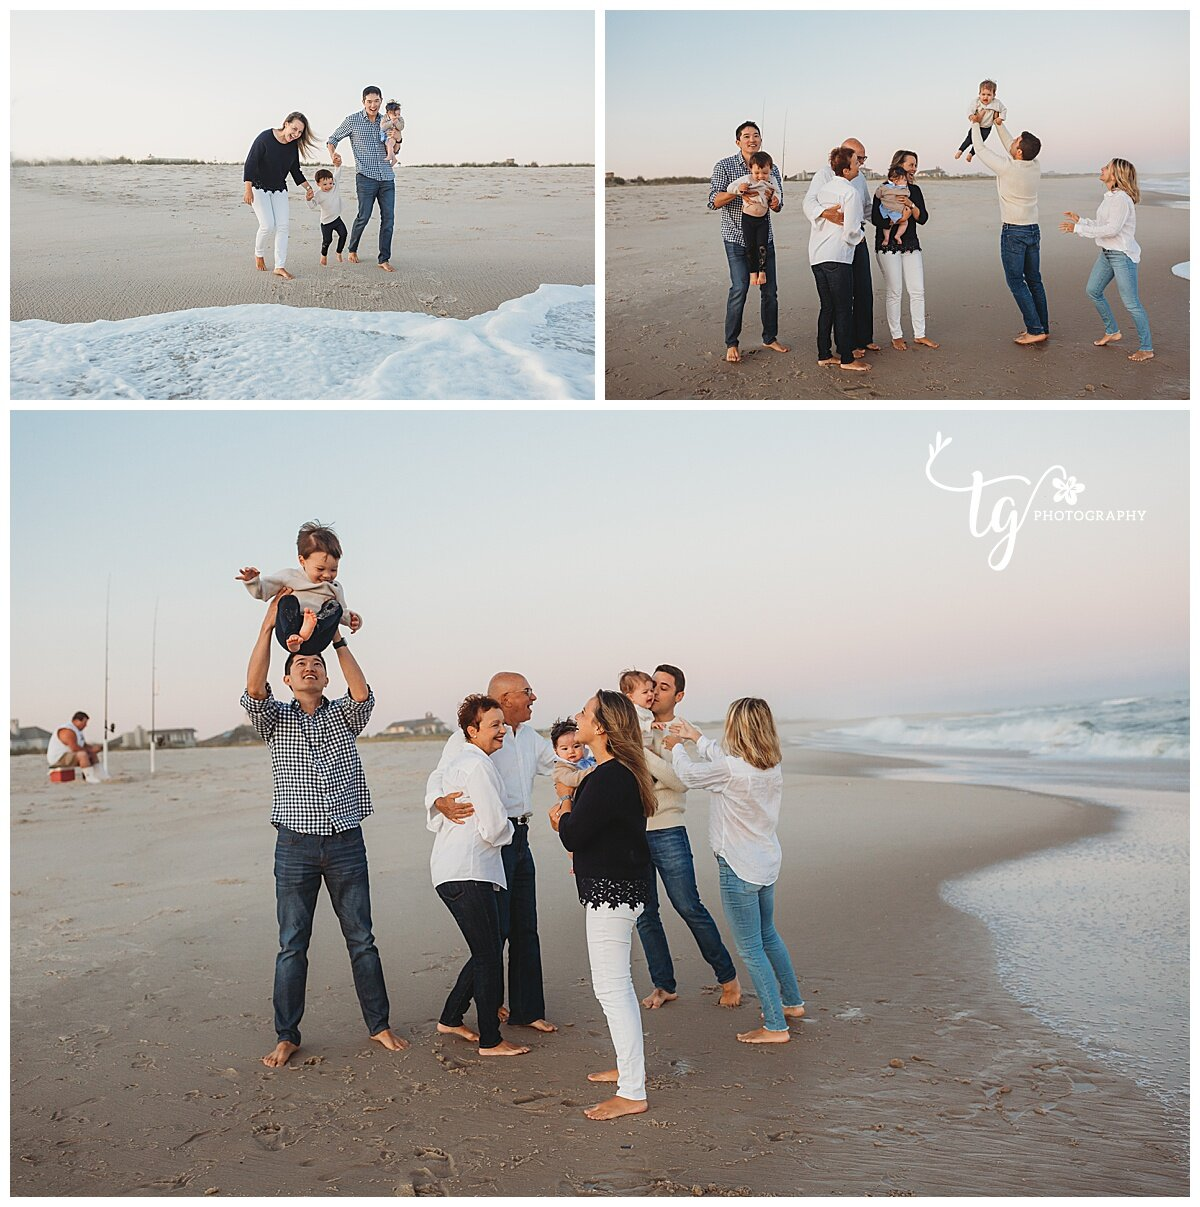 extended family photos that are candid